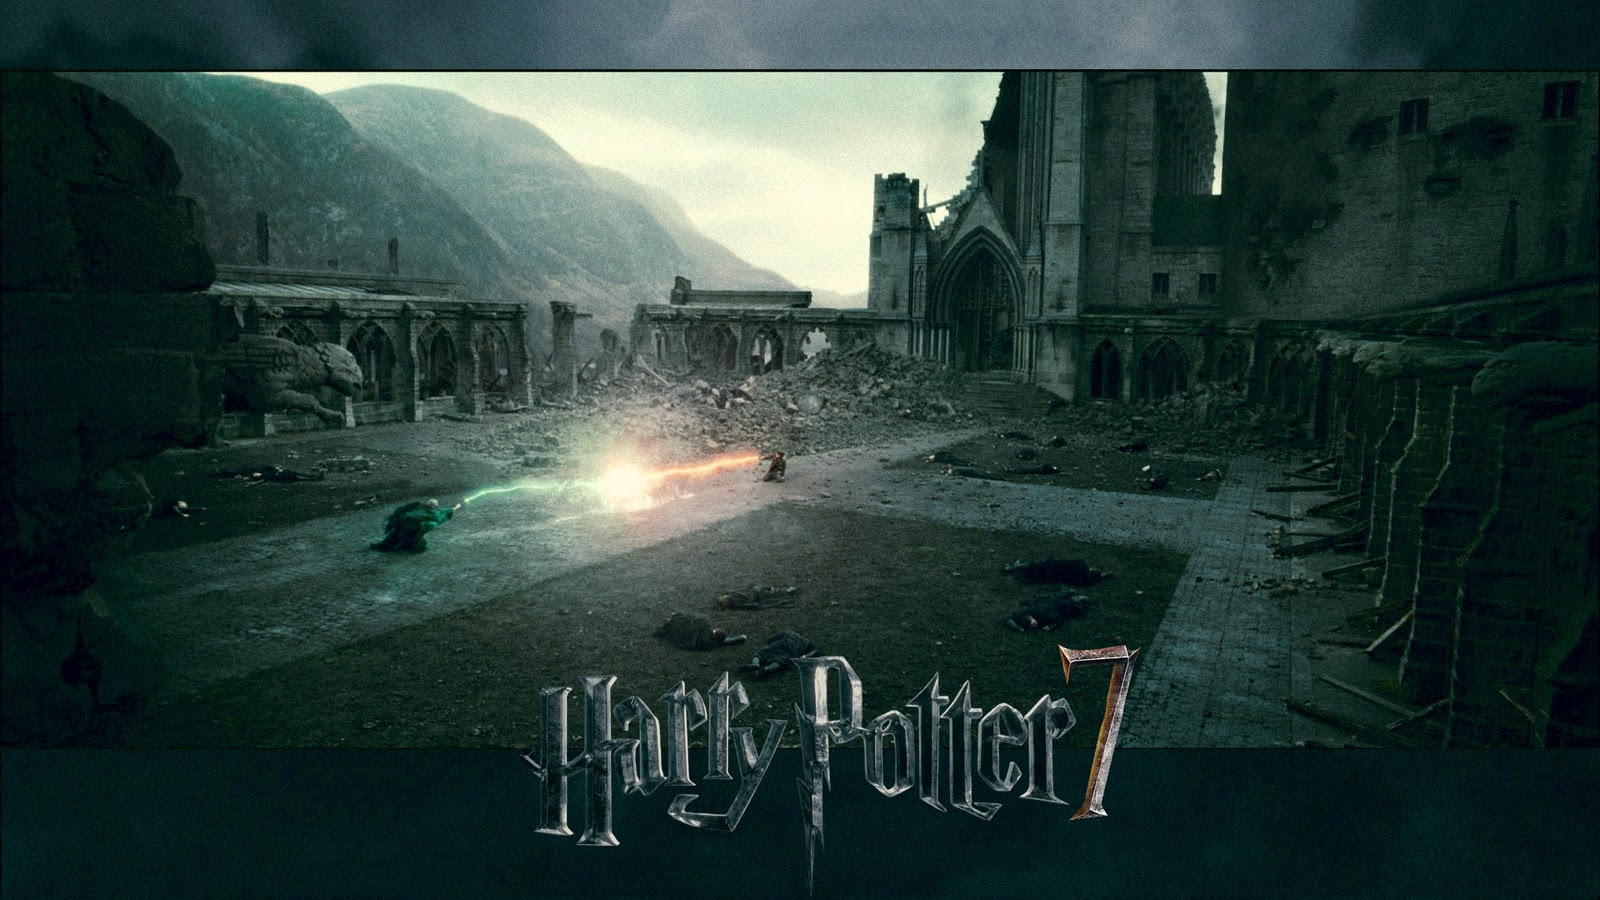 Cute Wallpapers Of Waterfalls Strictly Wallpaper Harry Potter And The Deathly Hallows